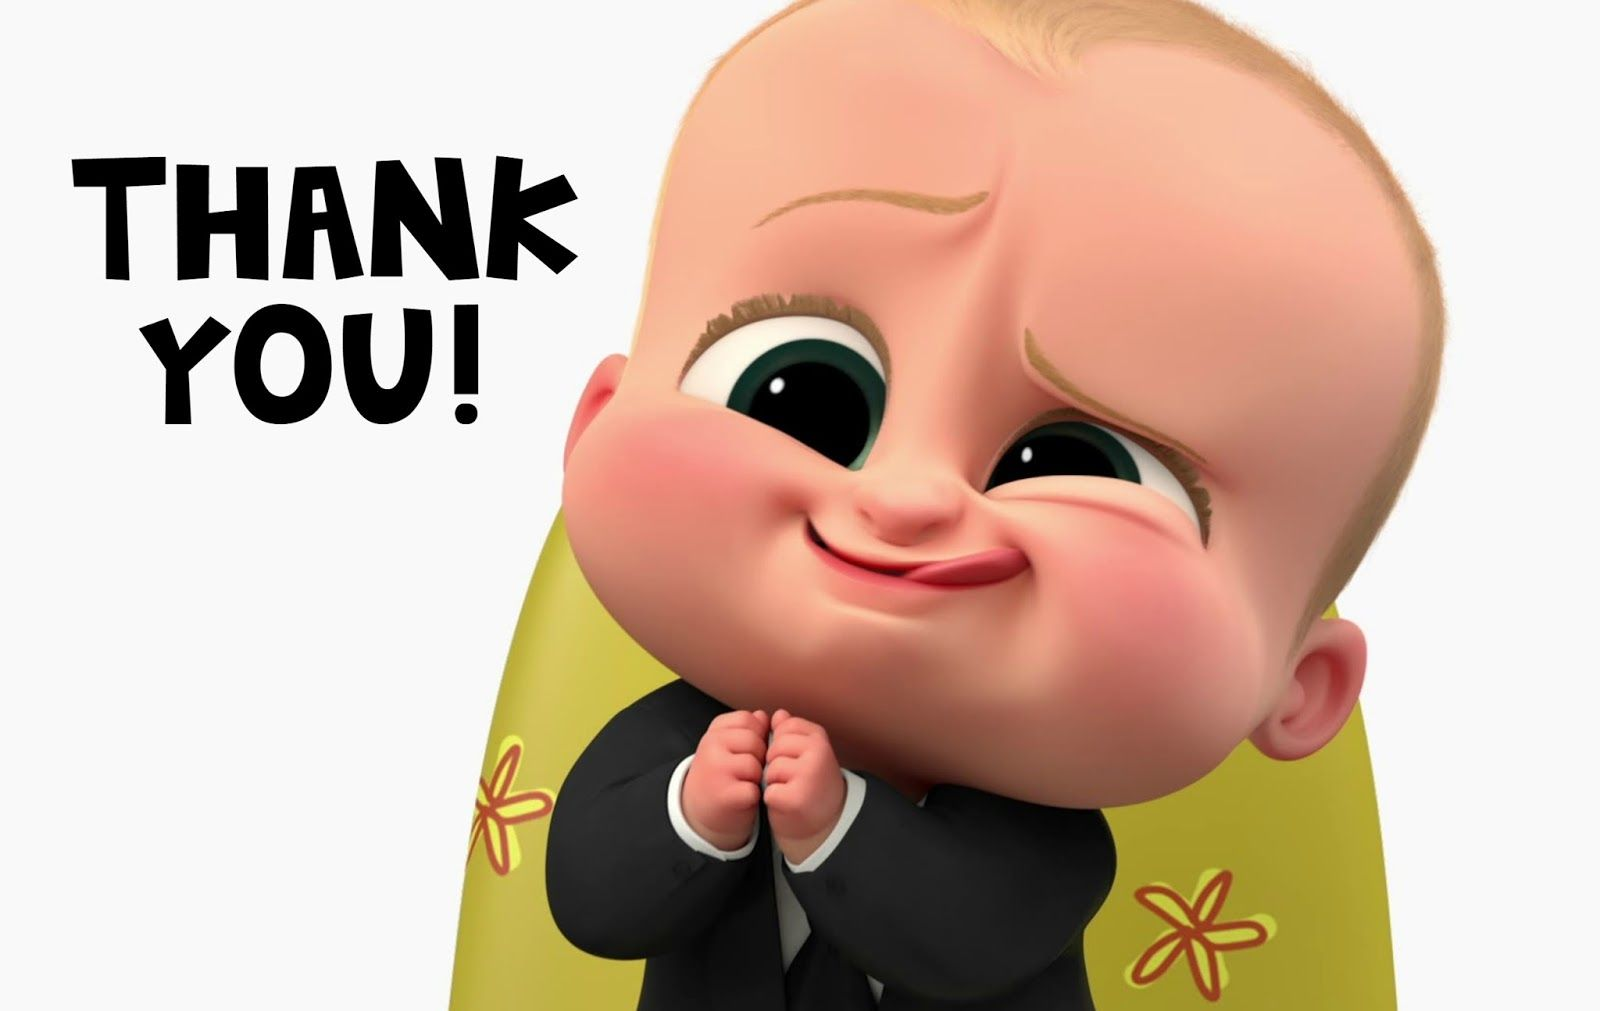 how to say thank you baby in turkish